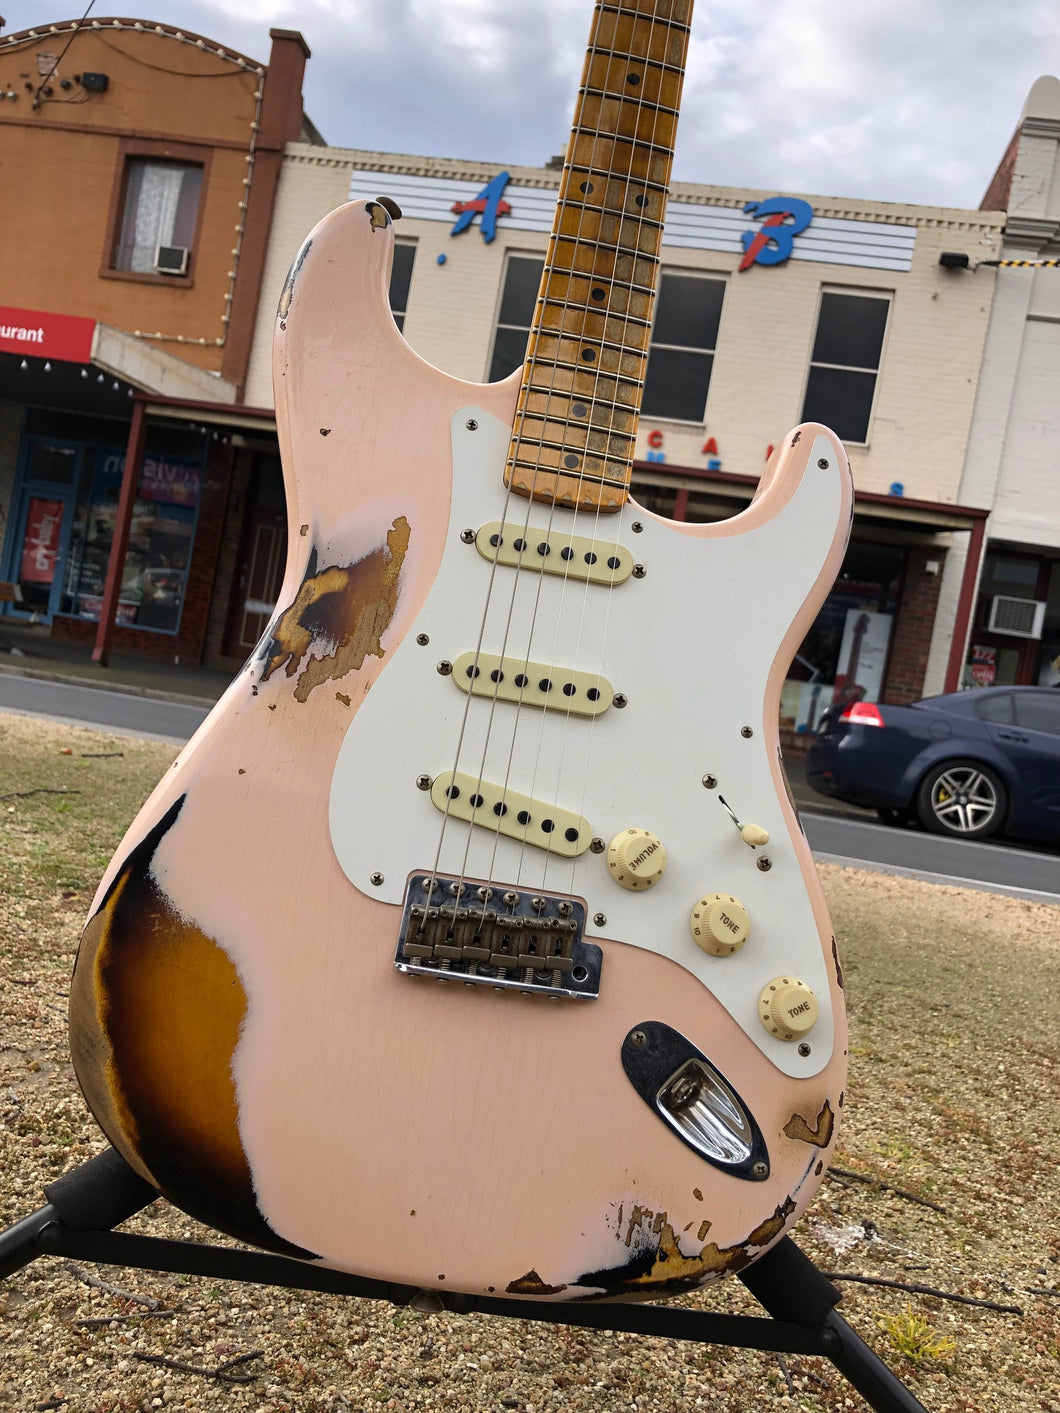 Fender Custom Shop Ltd 1958 Heavy Relic Stratocaster - Aged Shell Pink Over 2 Tone Sunburst Finish